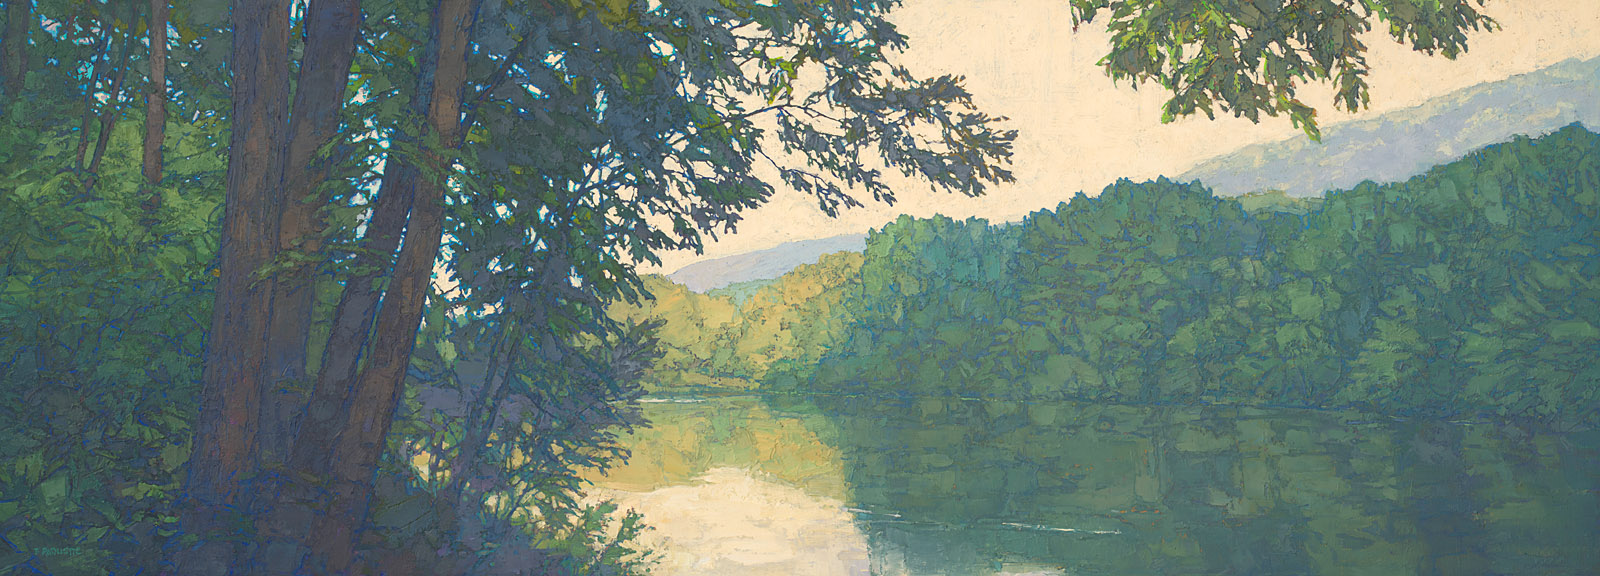 contemporary landscape oil painting of Allegheny Islands Wilderness Area